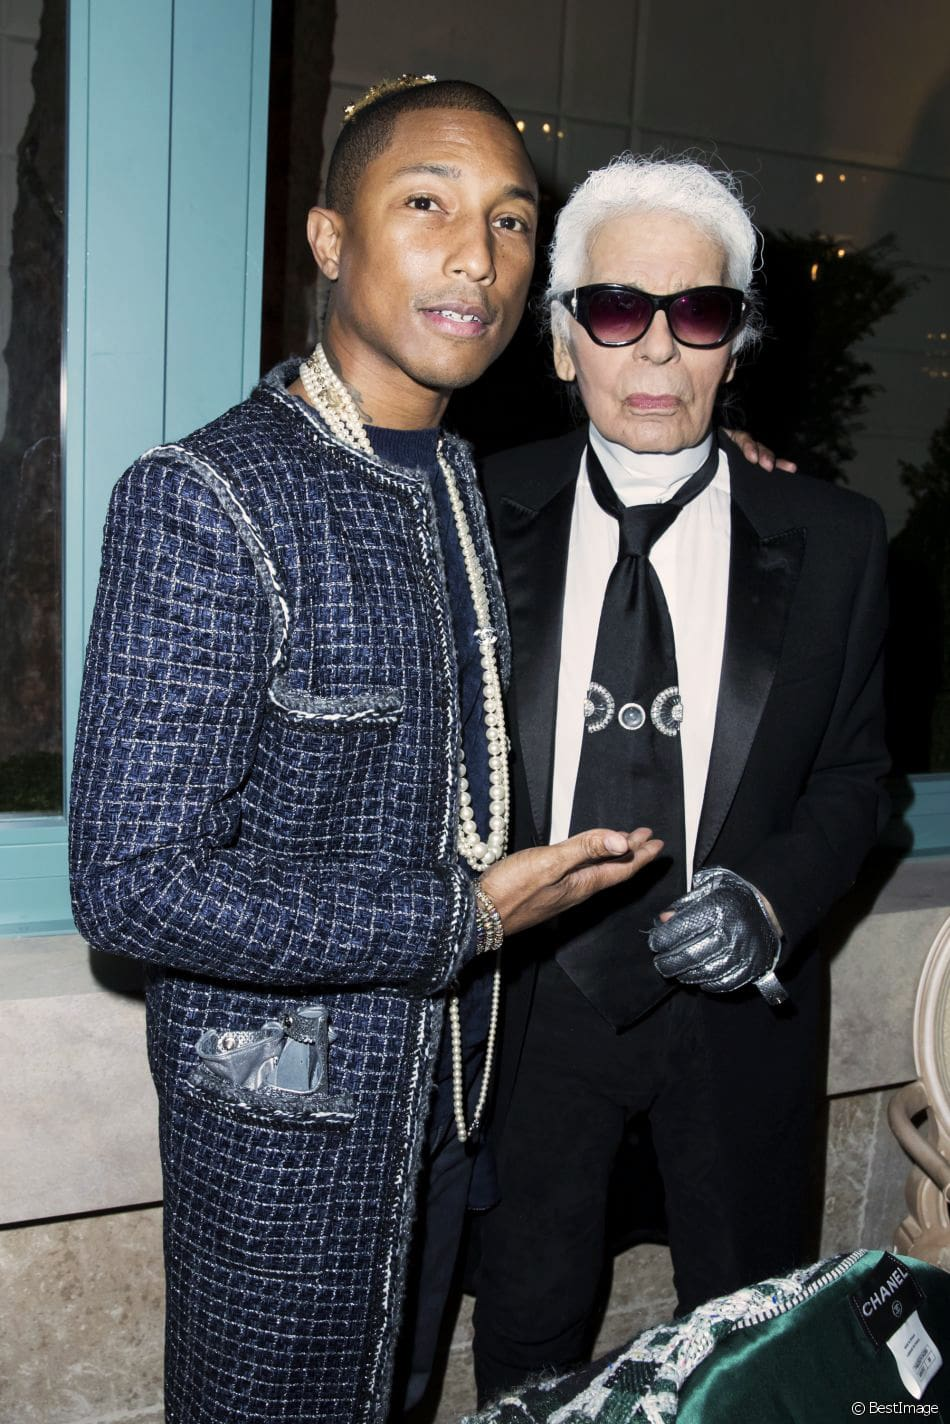 chanel-metiers-d'art-pharrell-williams-karl-lagerfled-eleonora-de-gray-runway-magazine Pharrell Williams